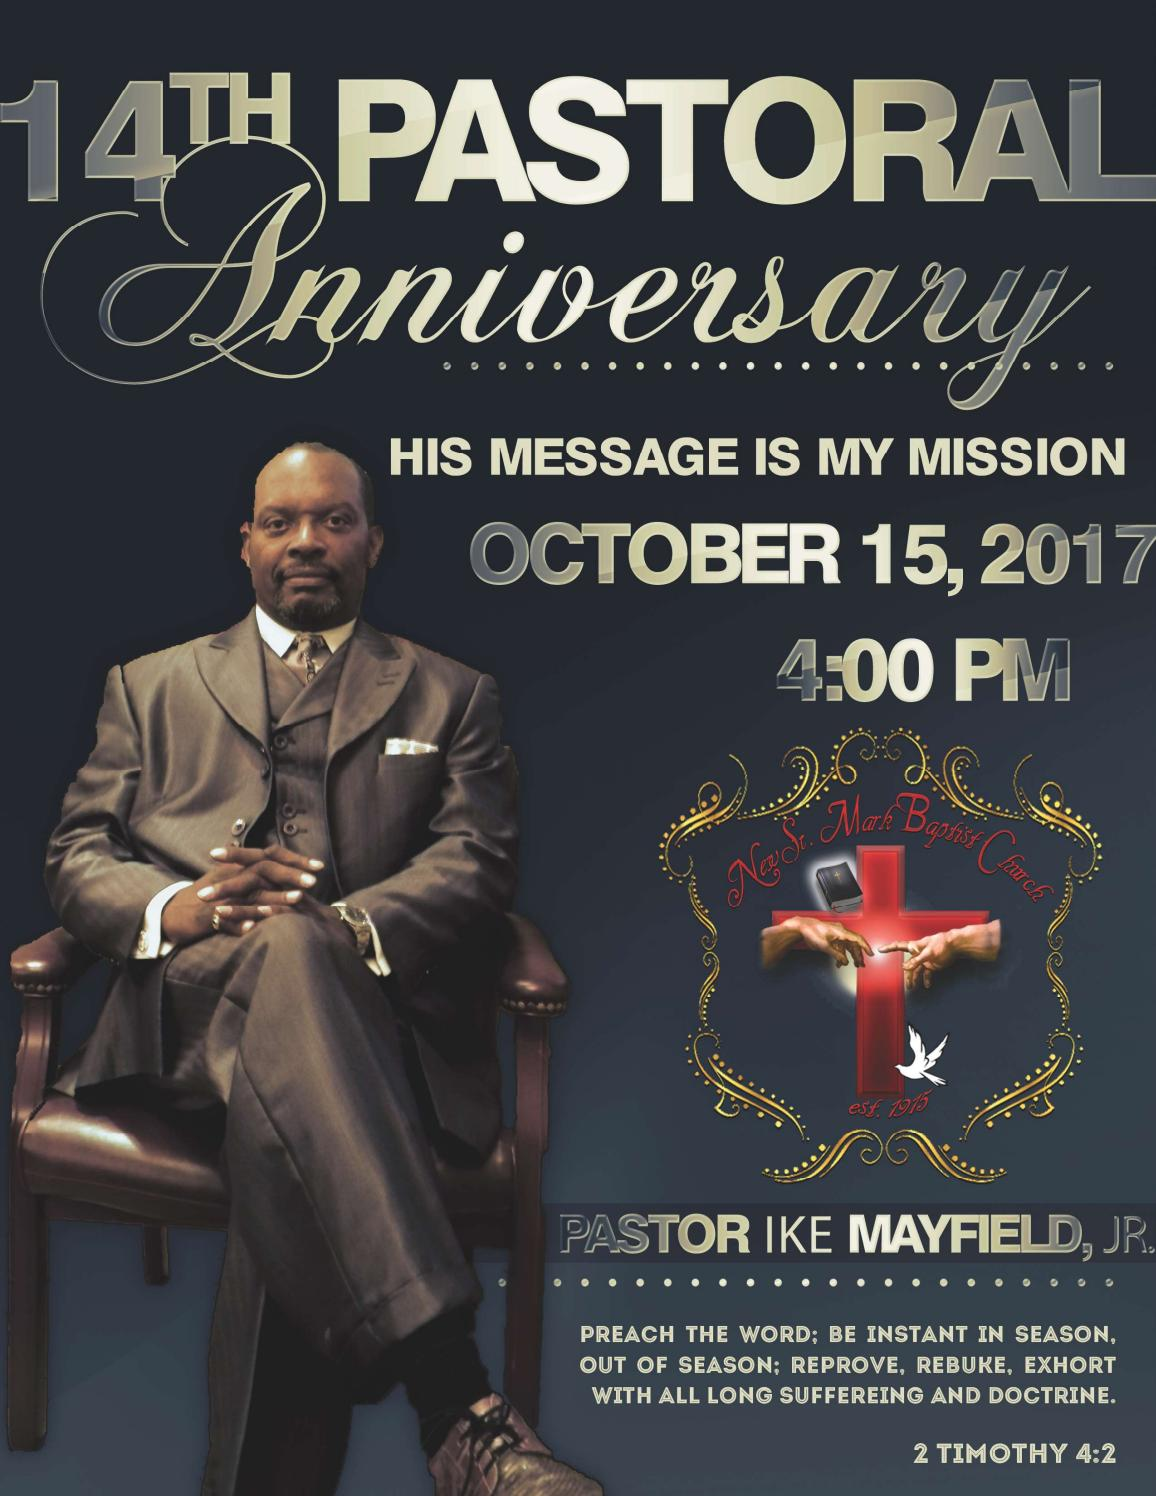 Pastor Ike Mayfield Jr's 14th Pastoral Anniversary Program ...